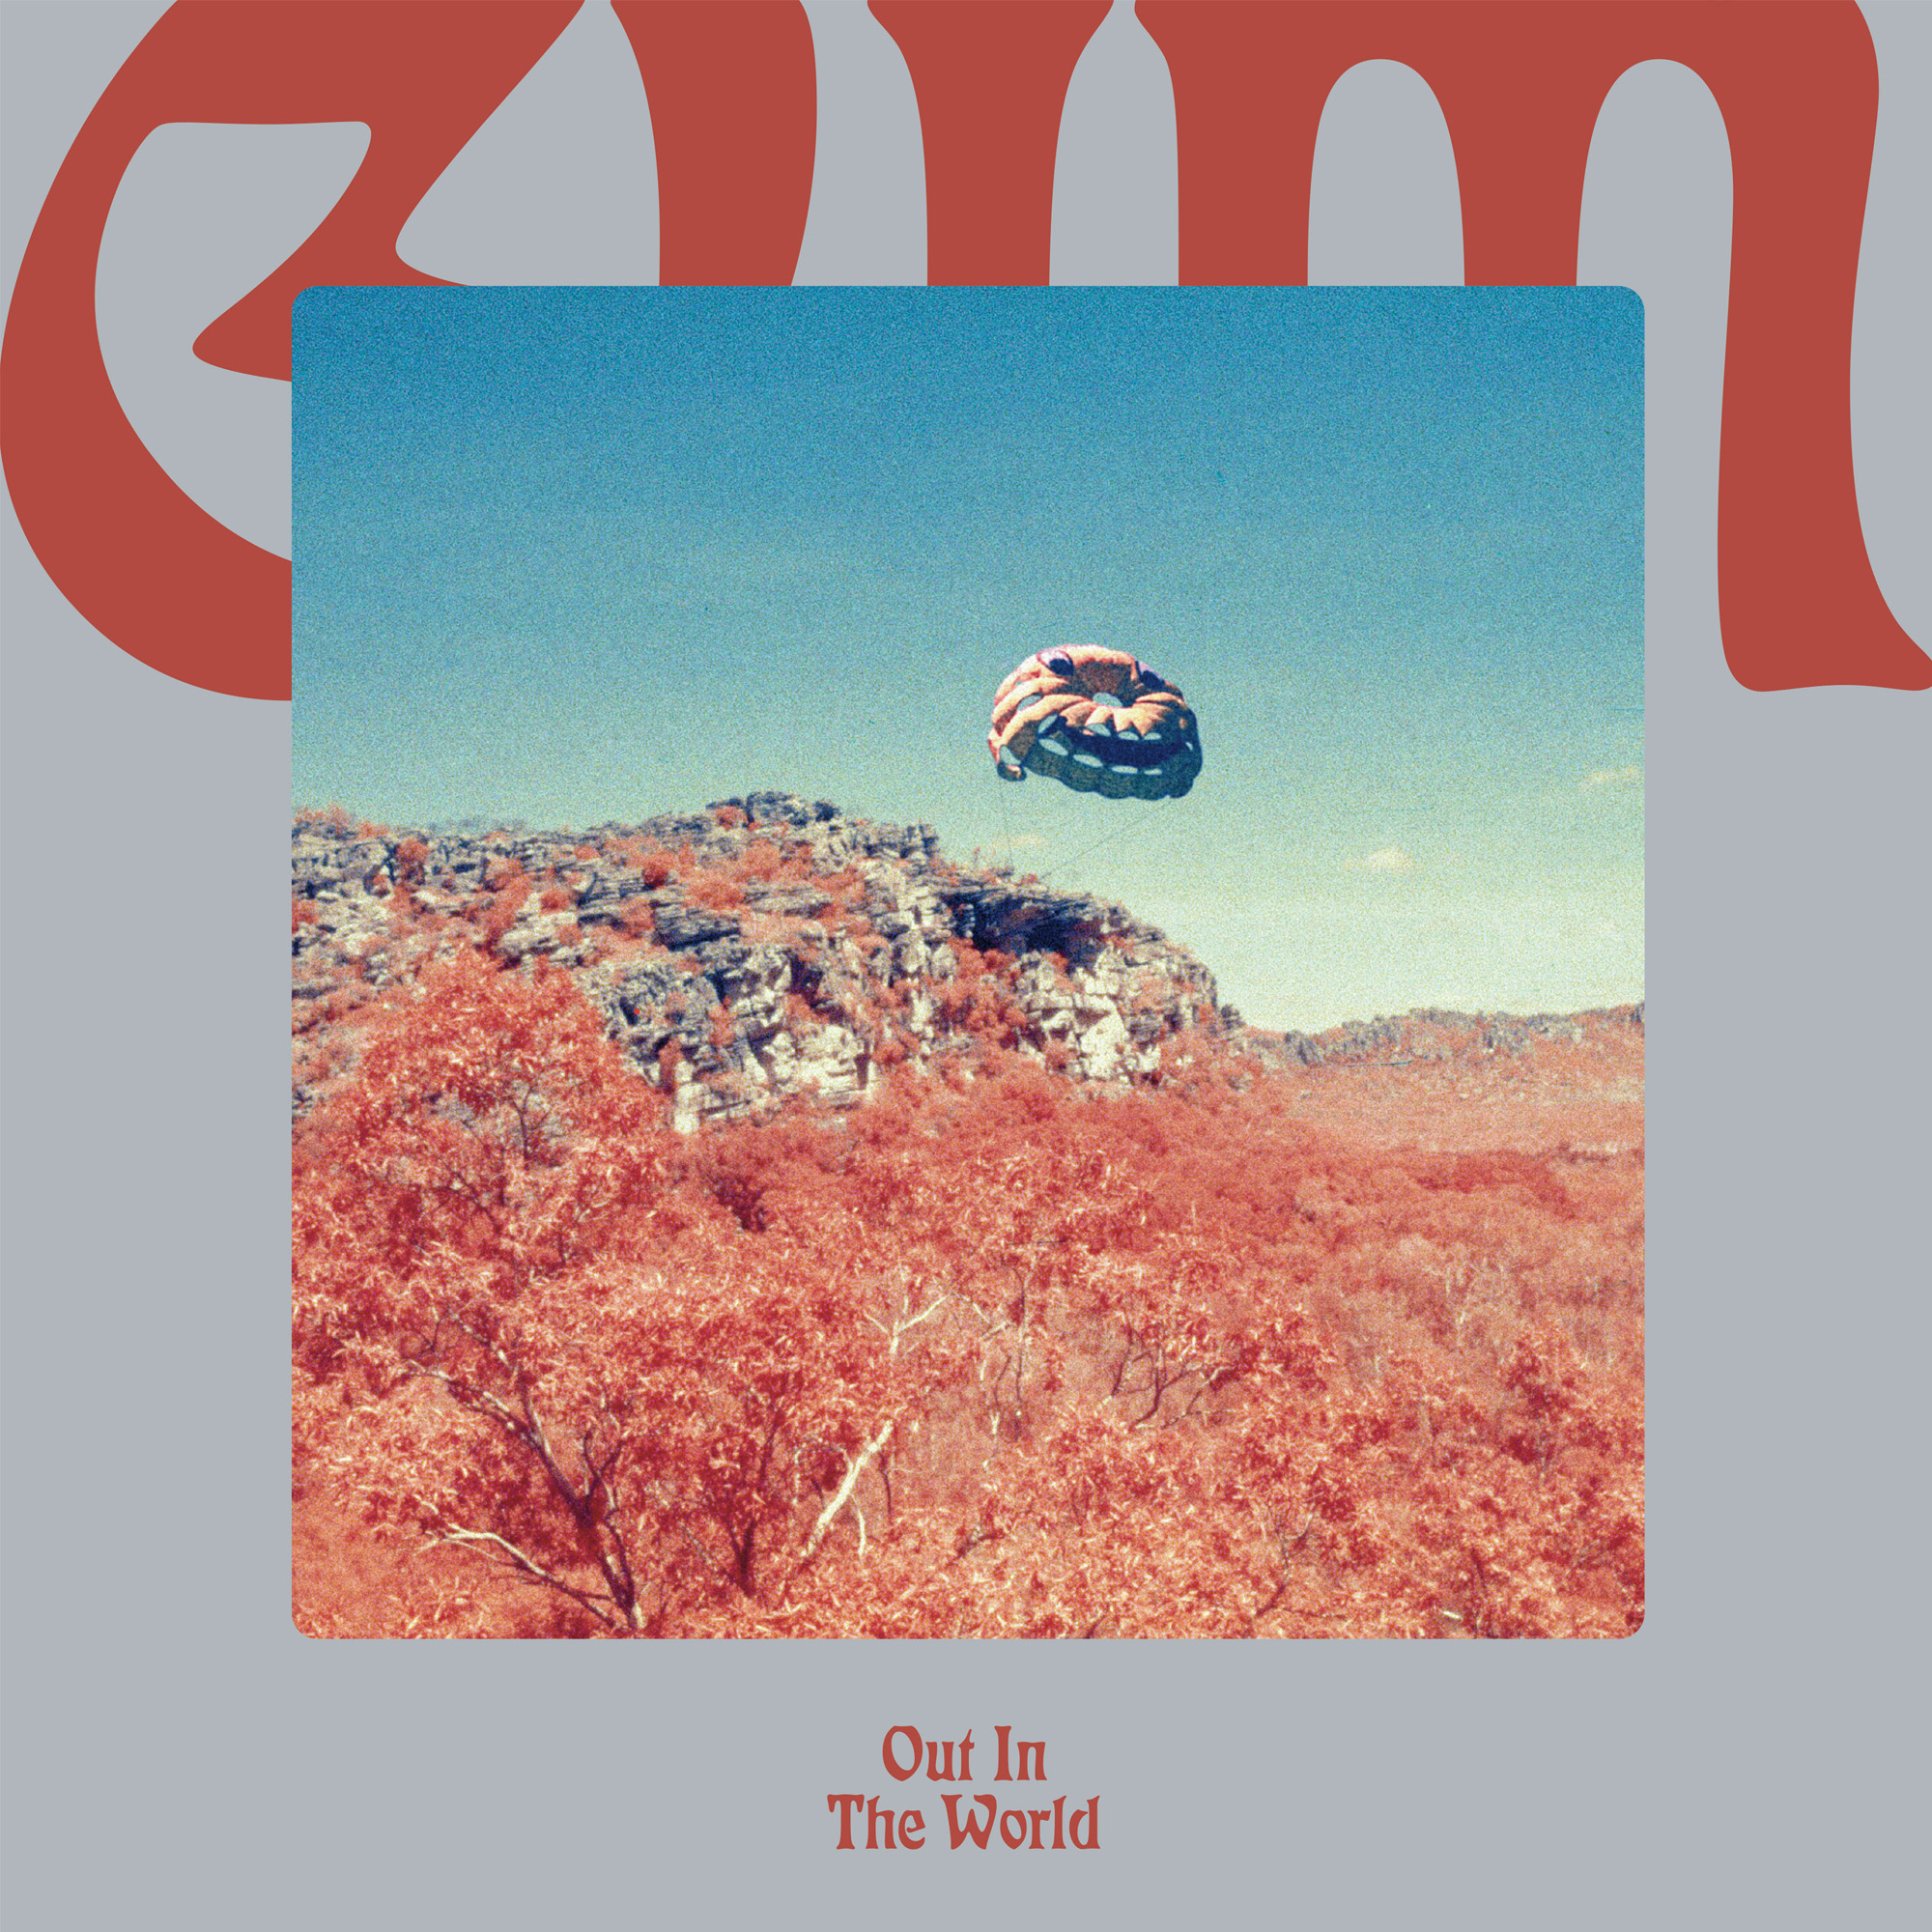 GUM Jay Watson Tame Impala Pond new album Out in the World